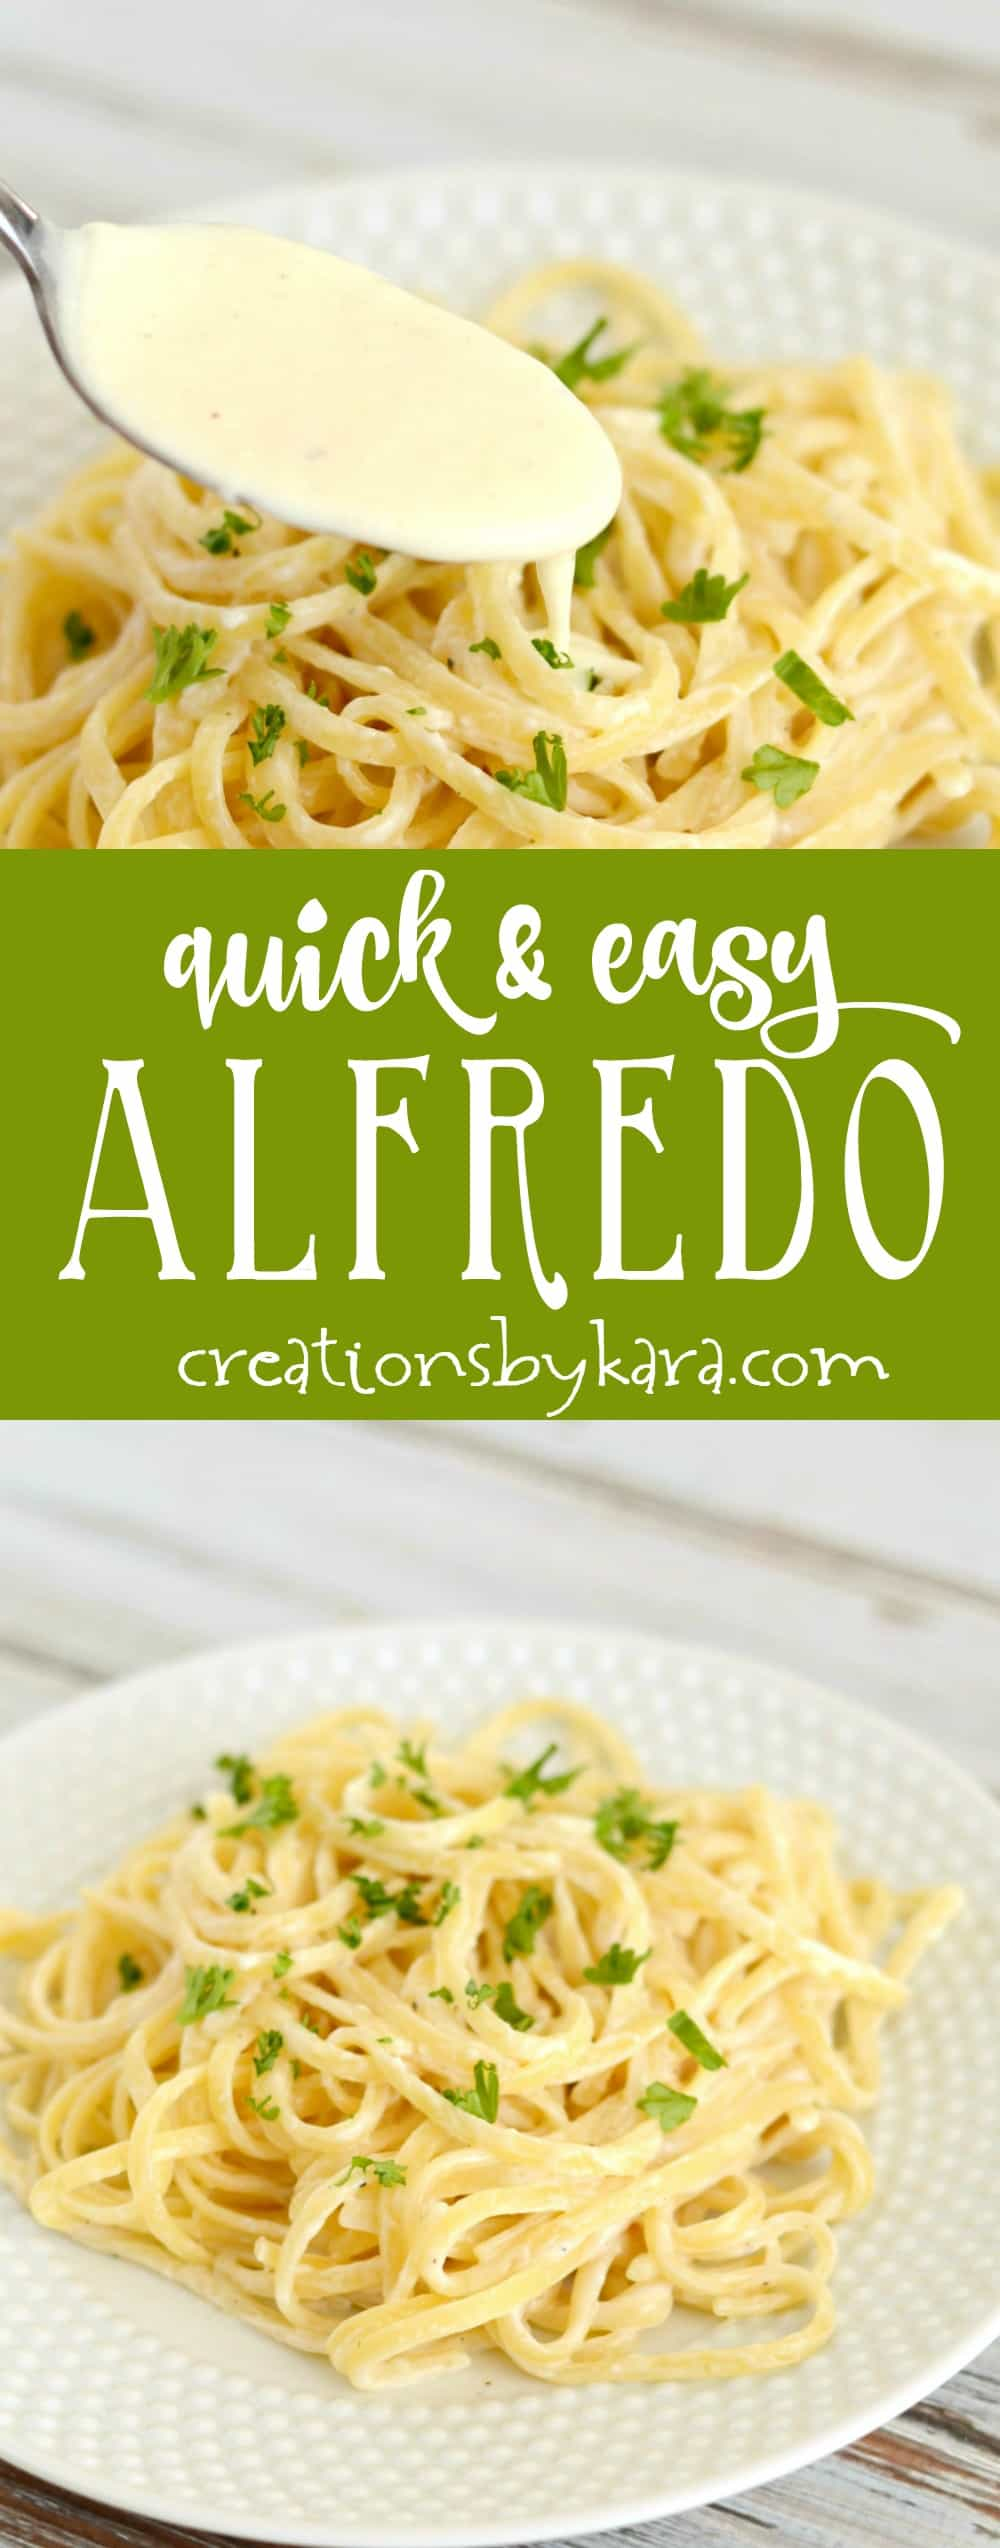 Recipe for quick and easy Alfredo Sauce. This simple alfredo sauce is a perfect last minute dinner recipe. Serve it as is, or add grilled chicken or shrimp!